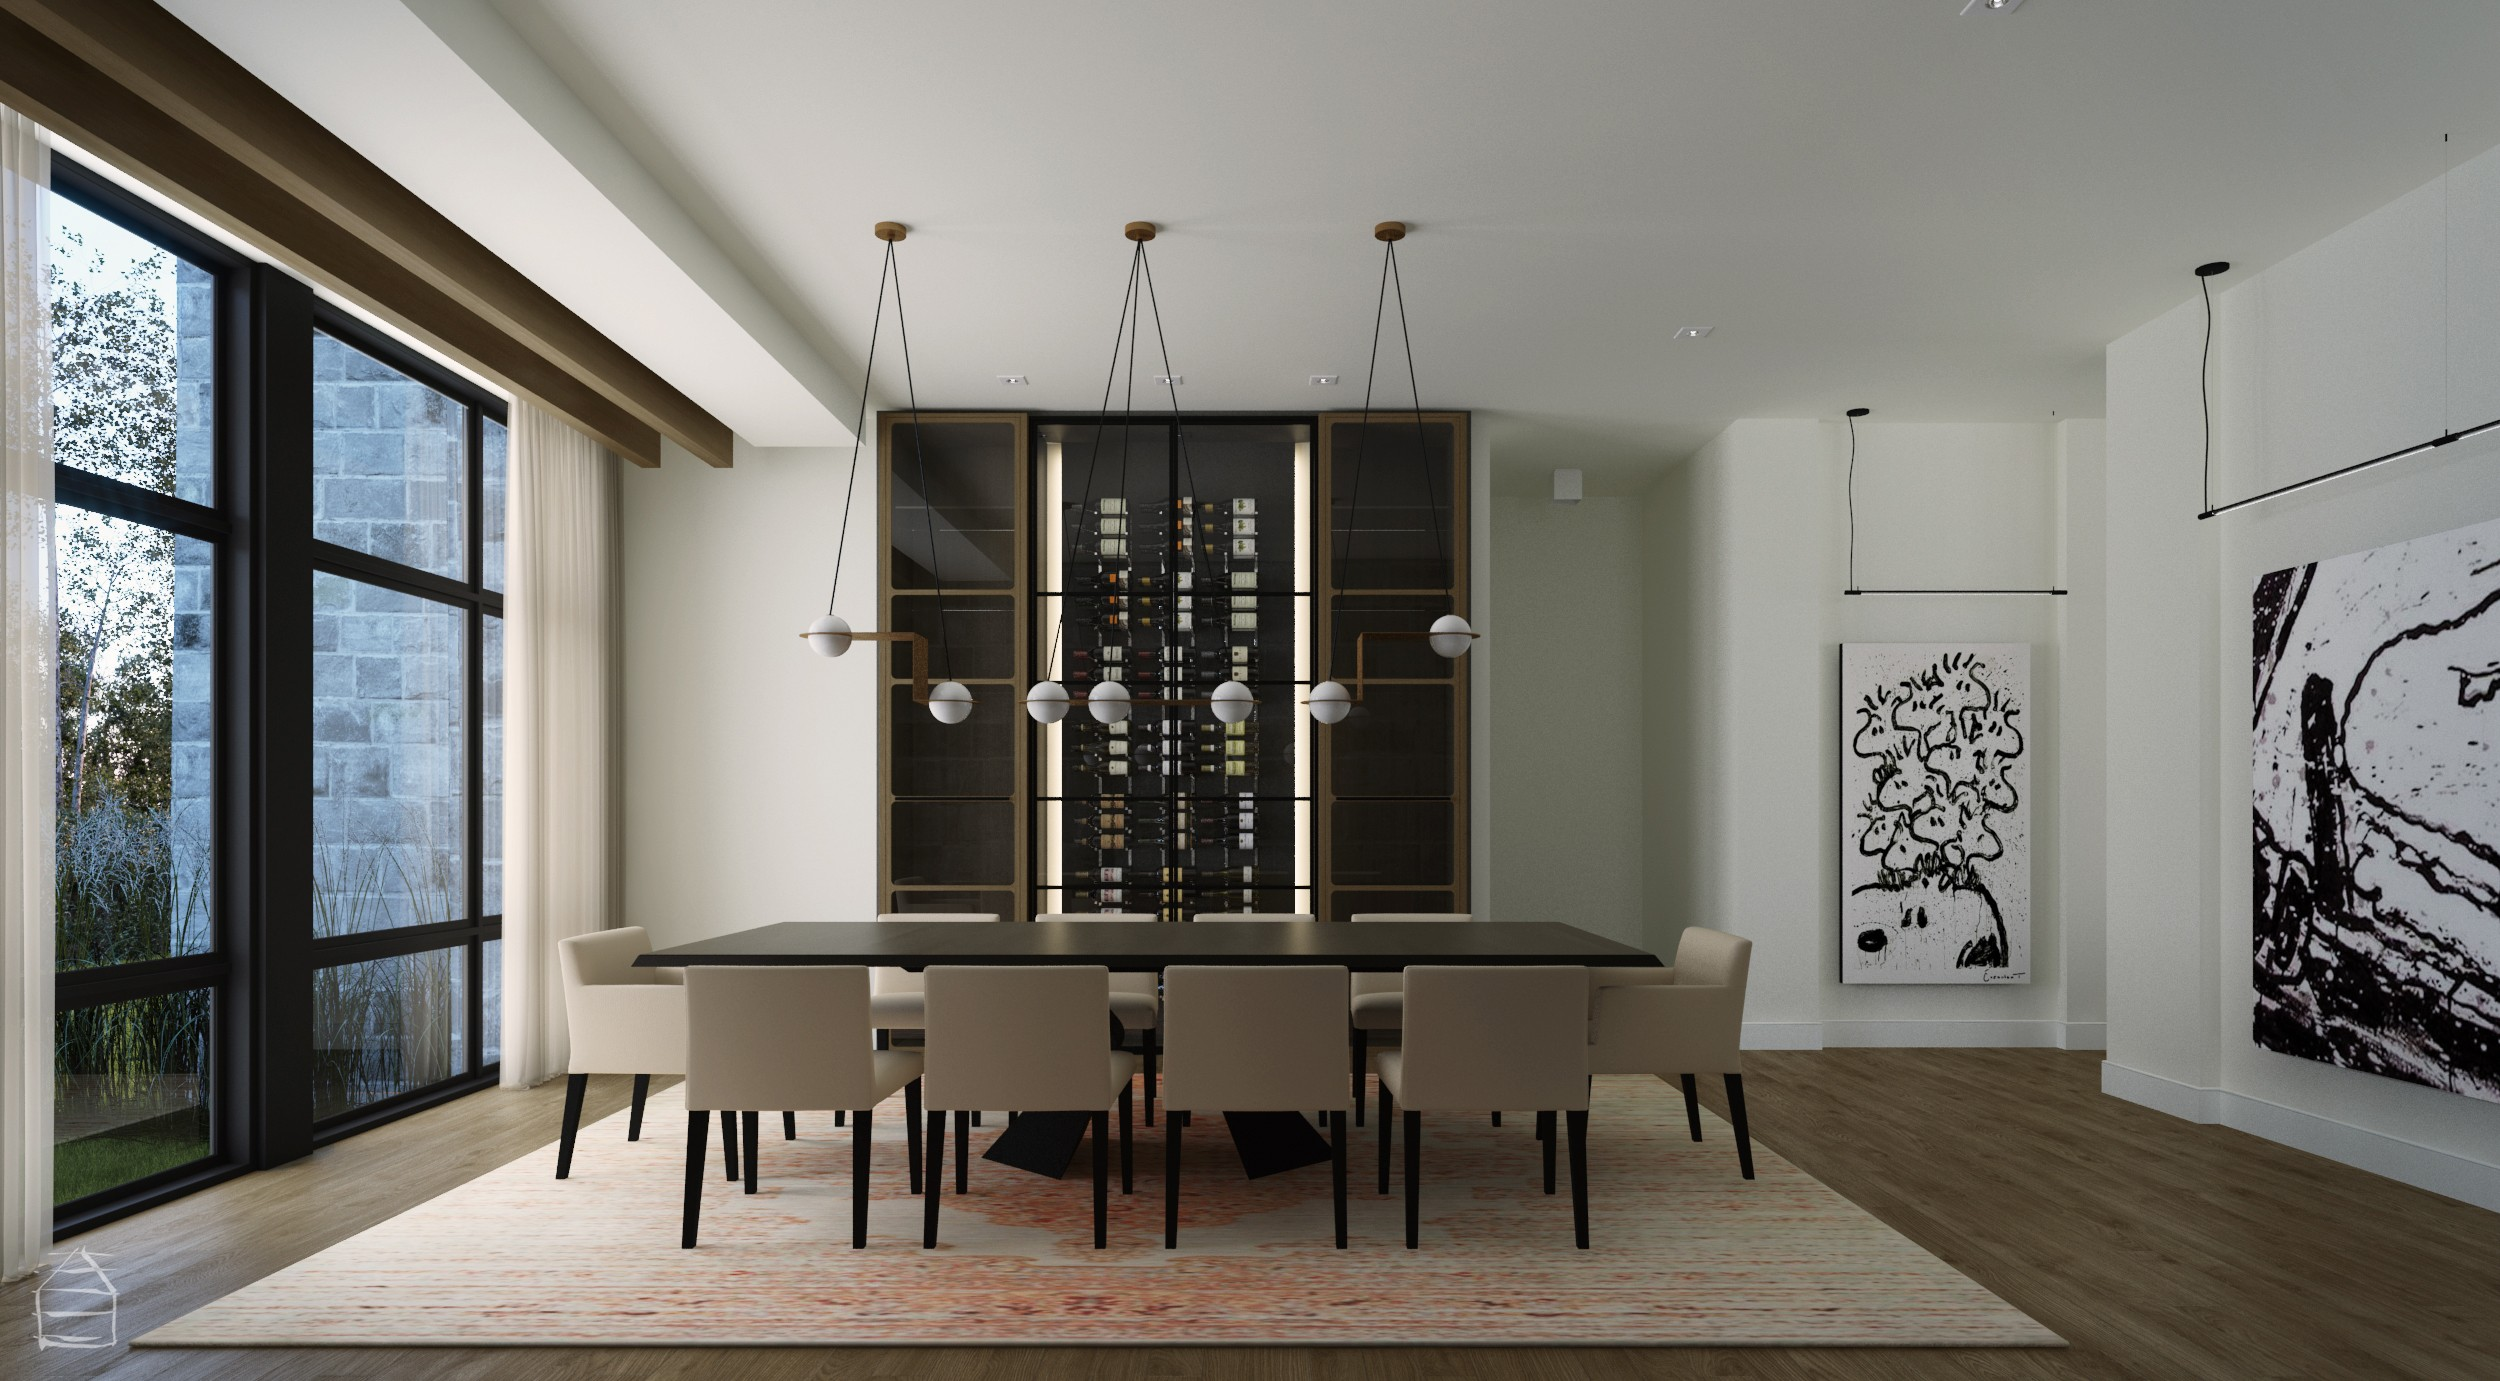 Dining room - Exclusive Concept Faîte-Boisé, Terrebonne – Luxury Home – Domicil